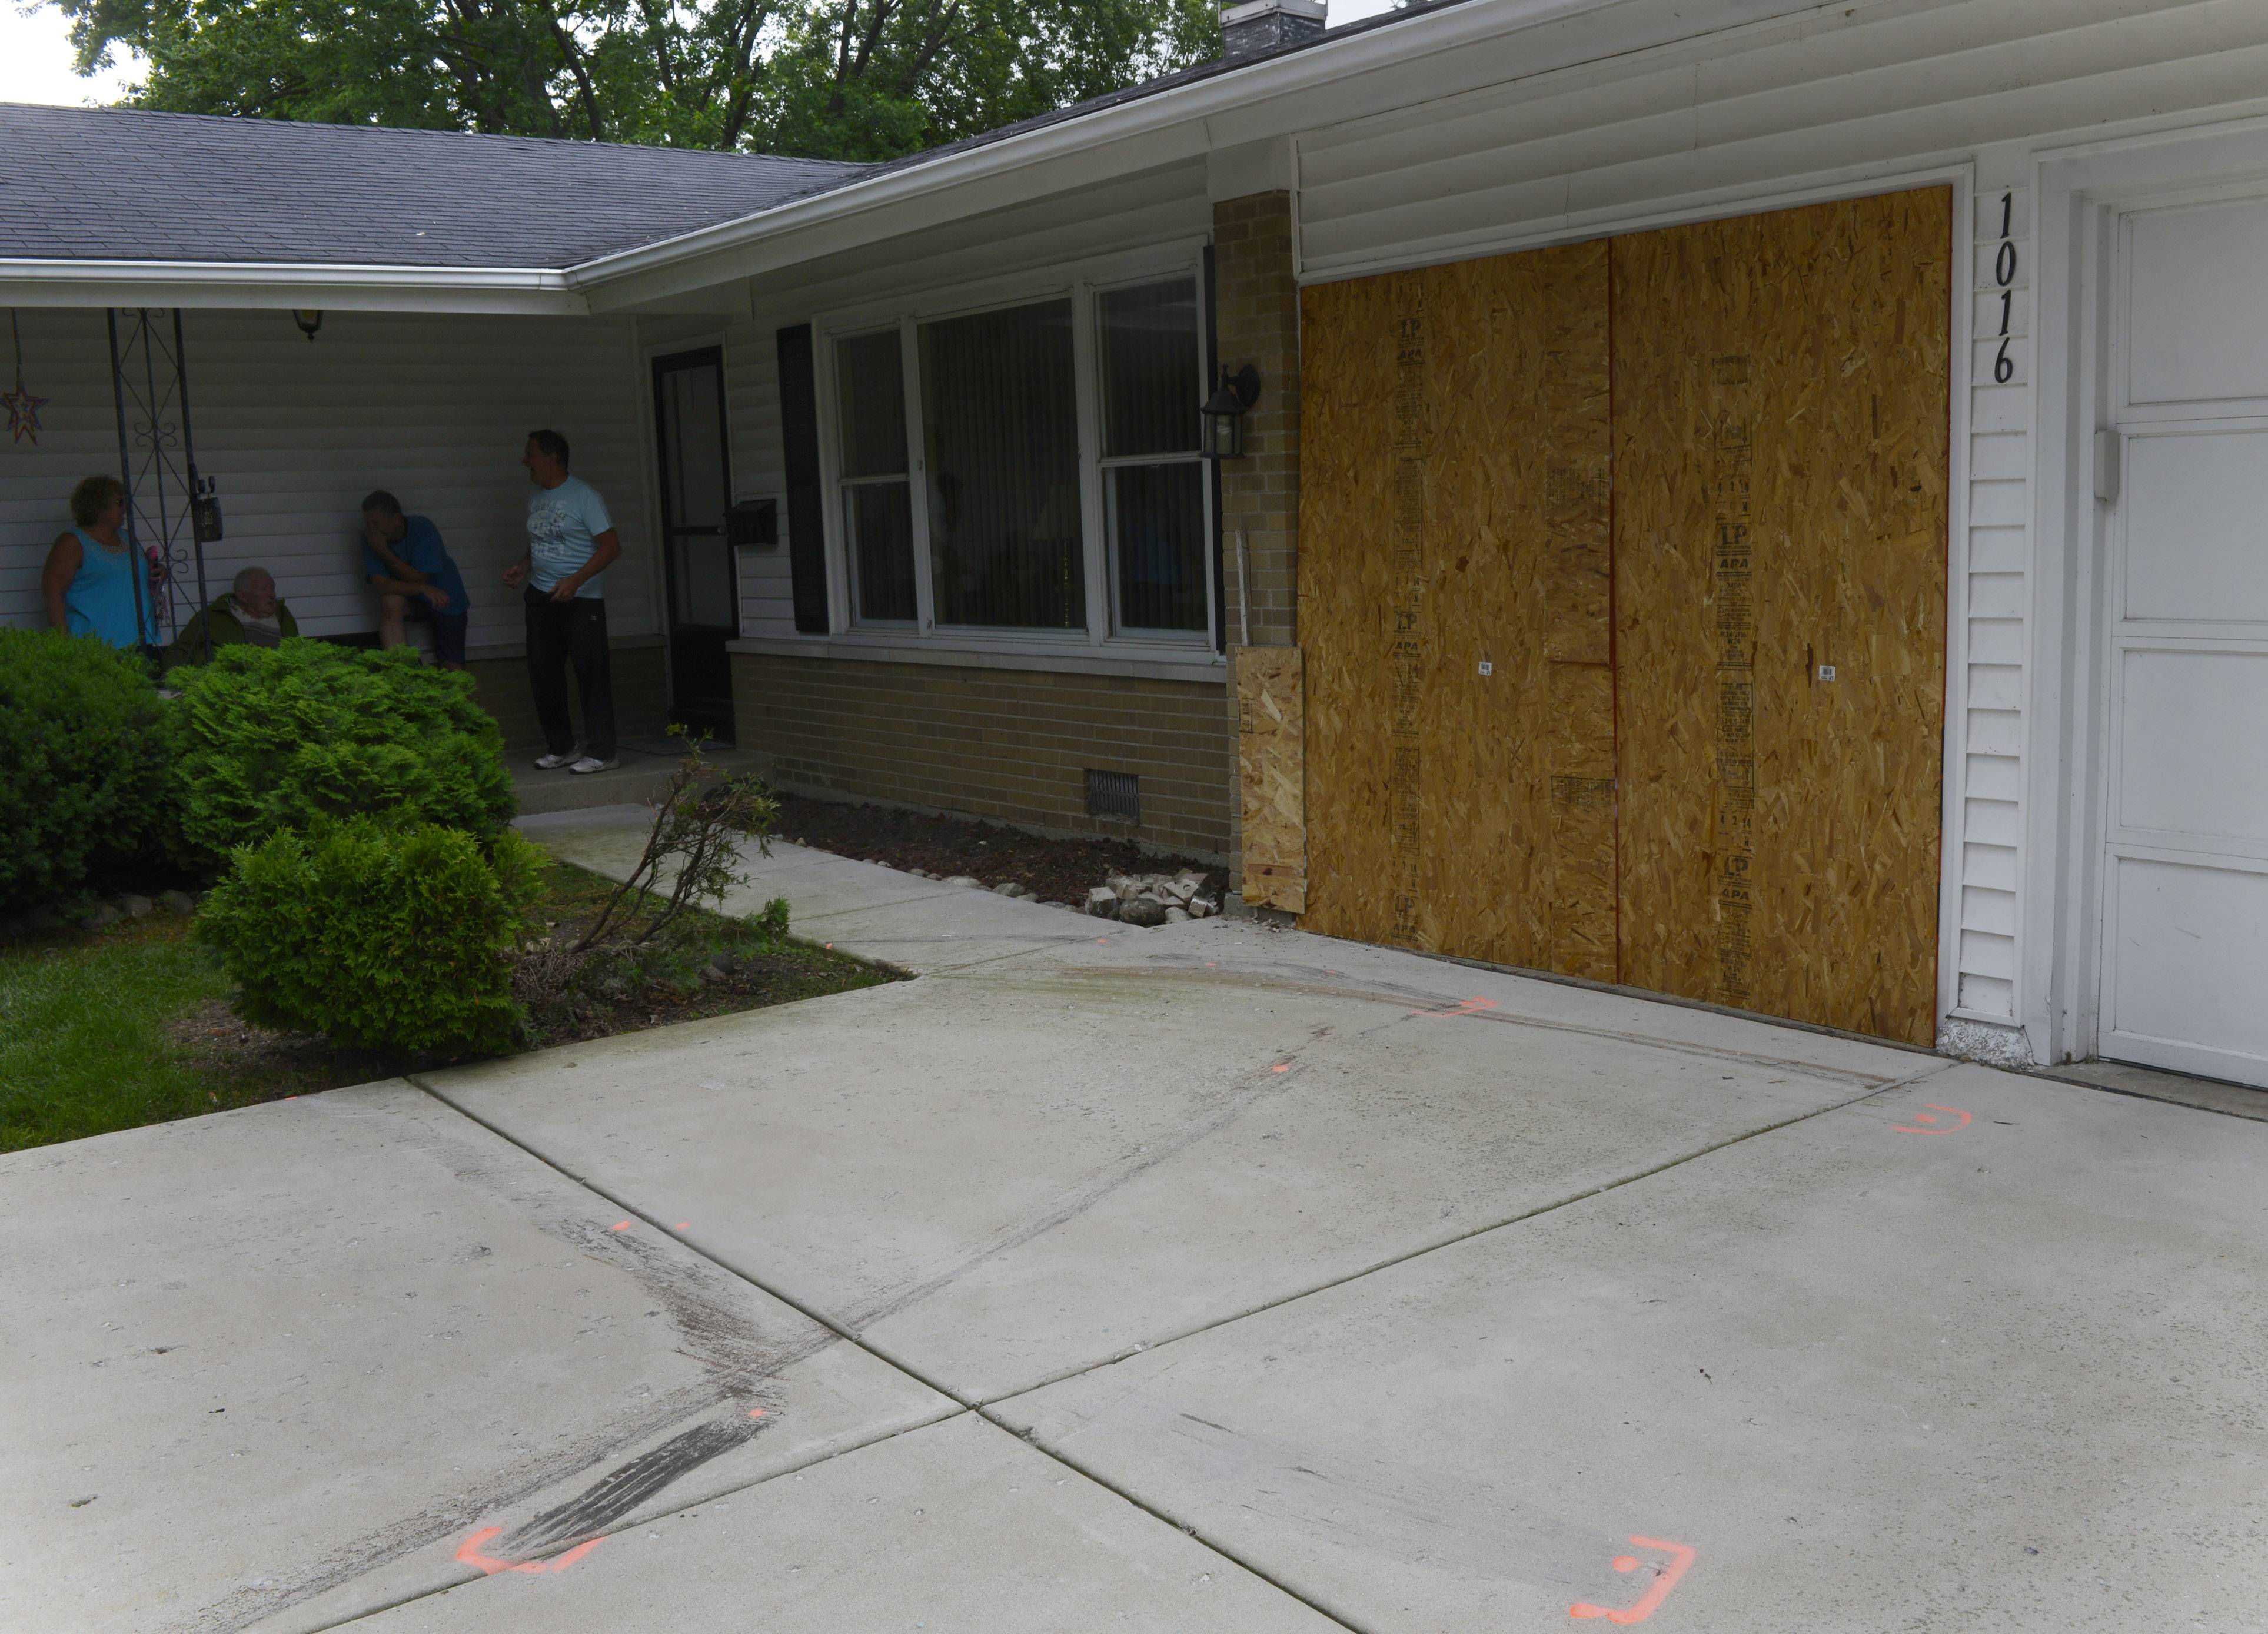 A car struck a house on the 1000 block of Cypress Lane in Elk Grove Village early Saturday morning. Residents of the home were not injured, but two of the four people who were in the car suffered serious injuries, police said.